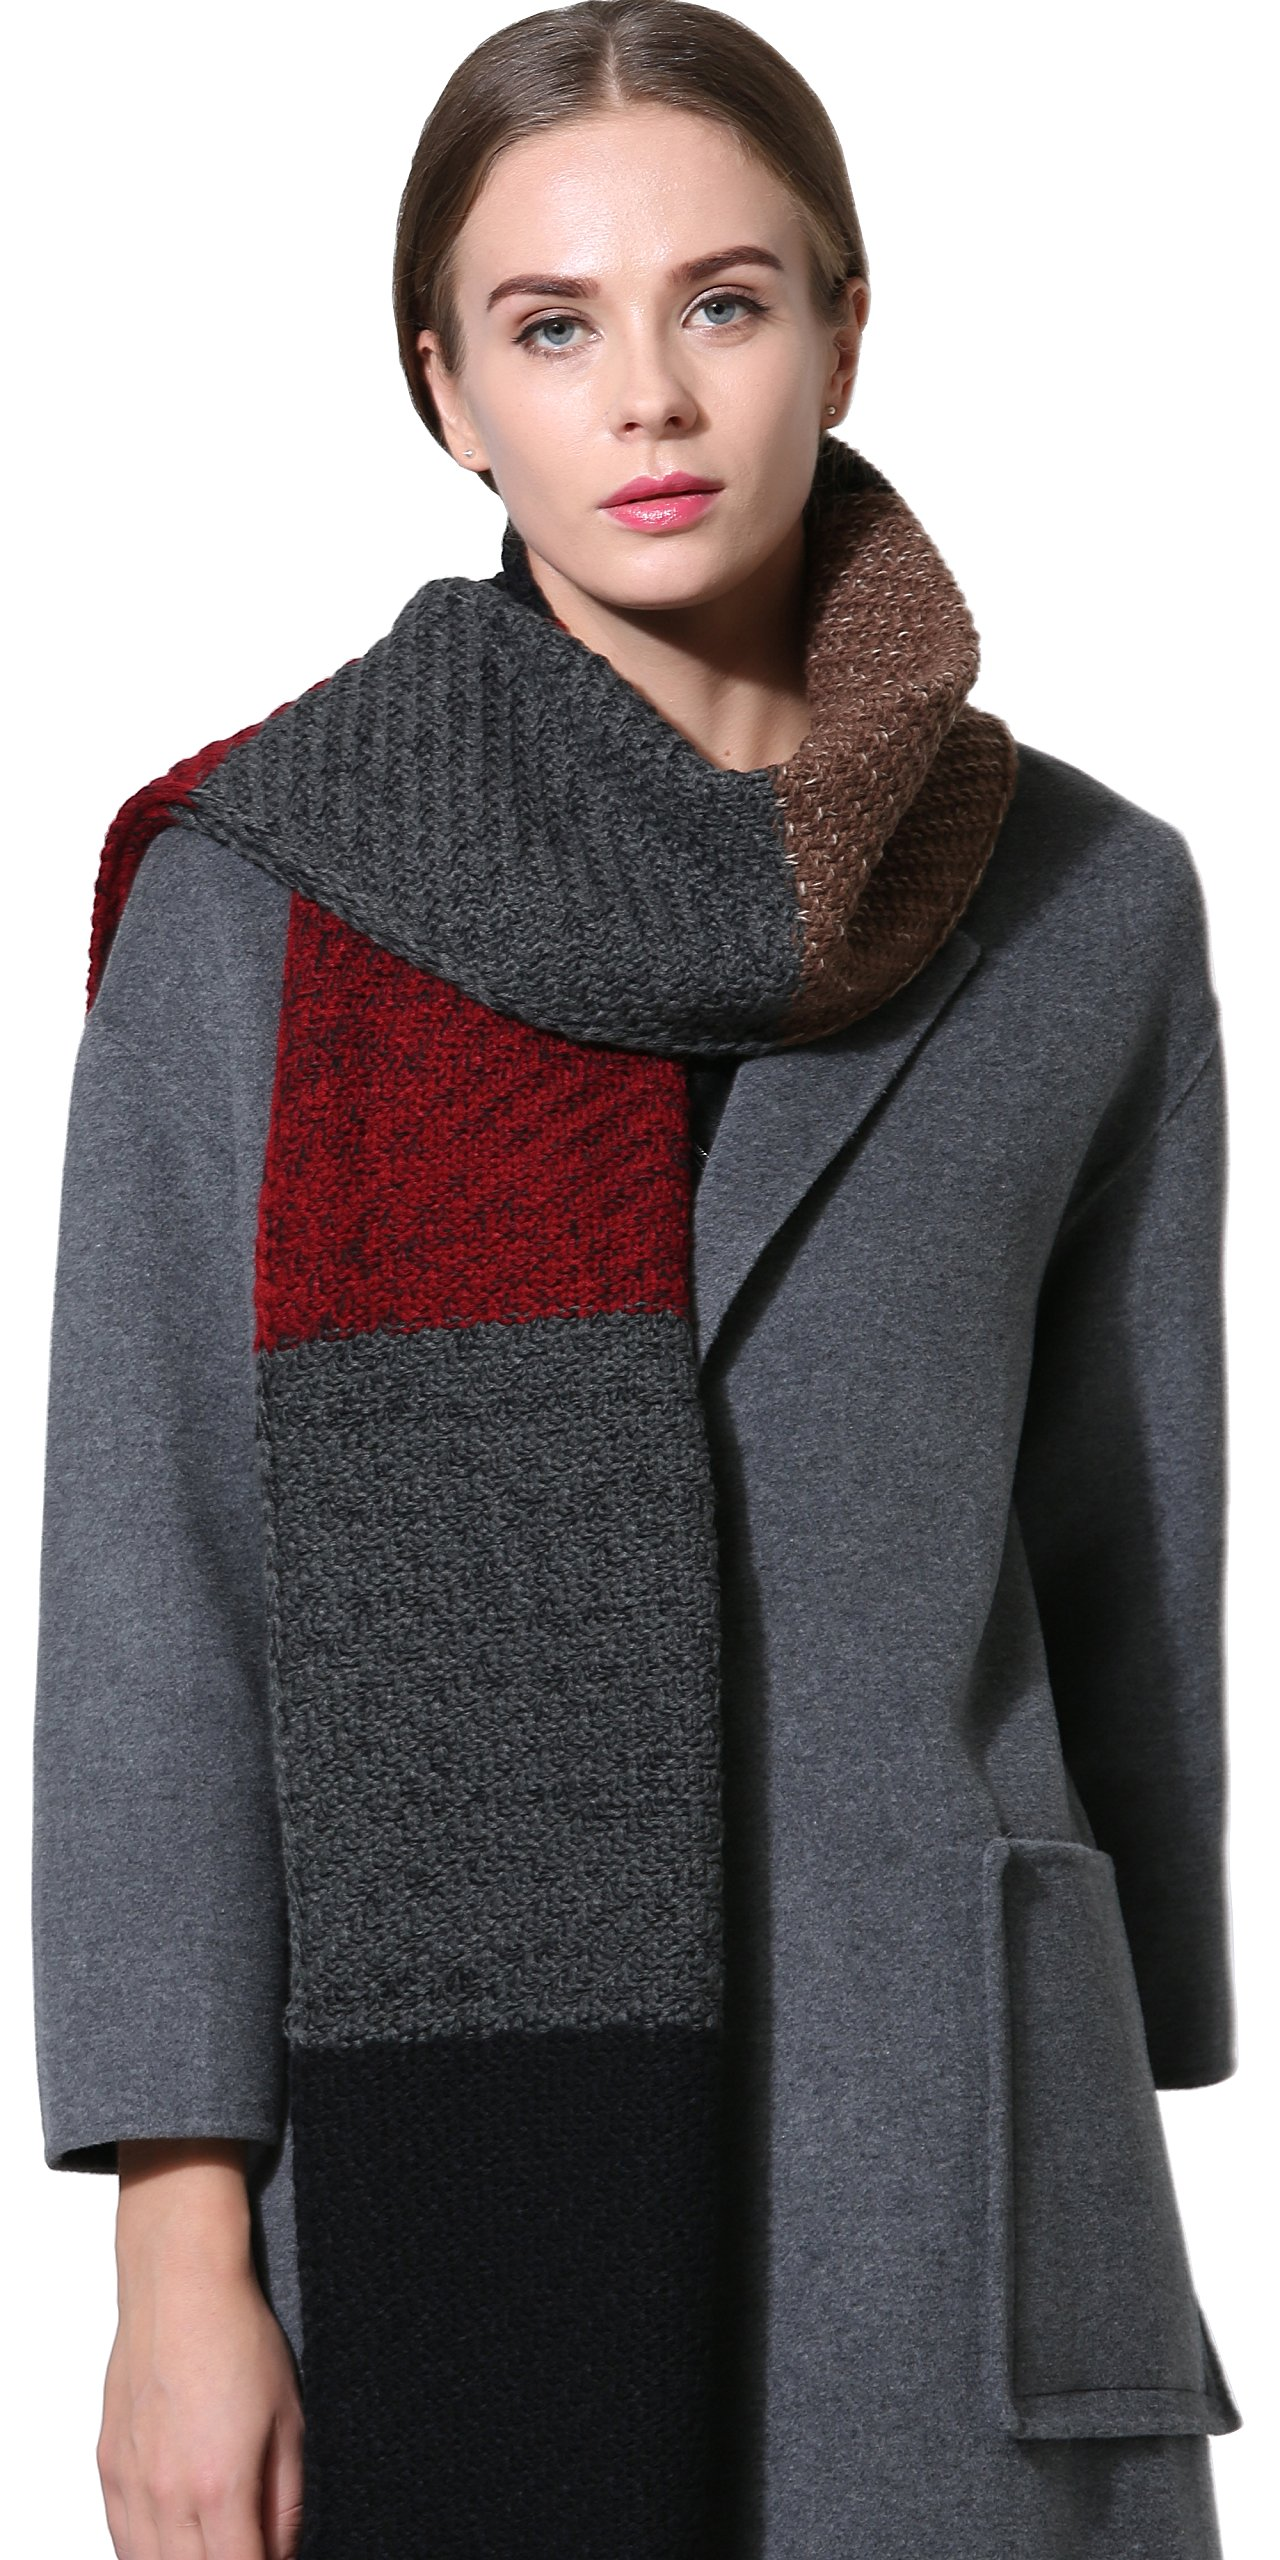 Warm scarf for cold weather